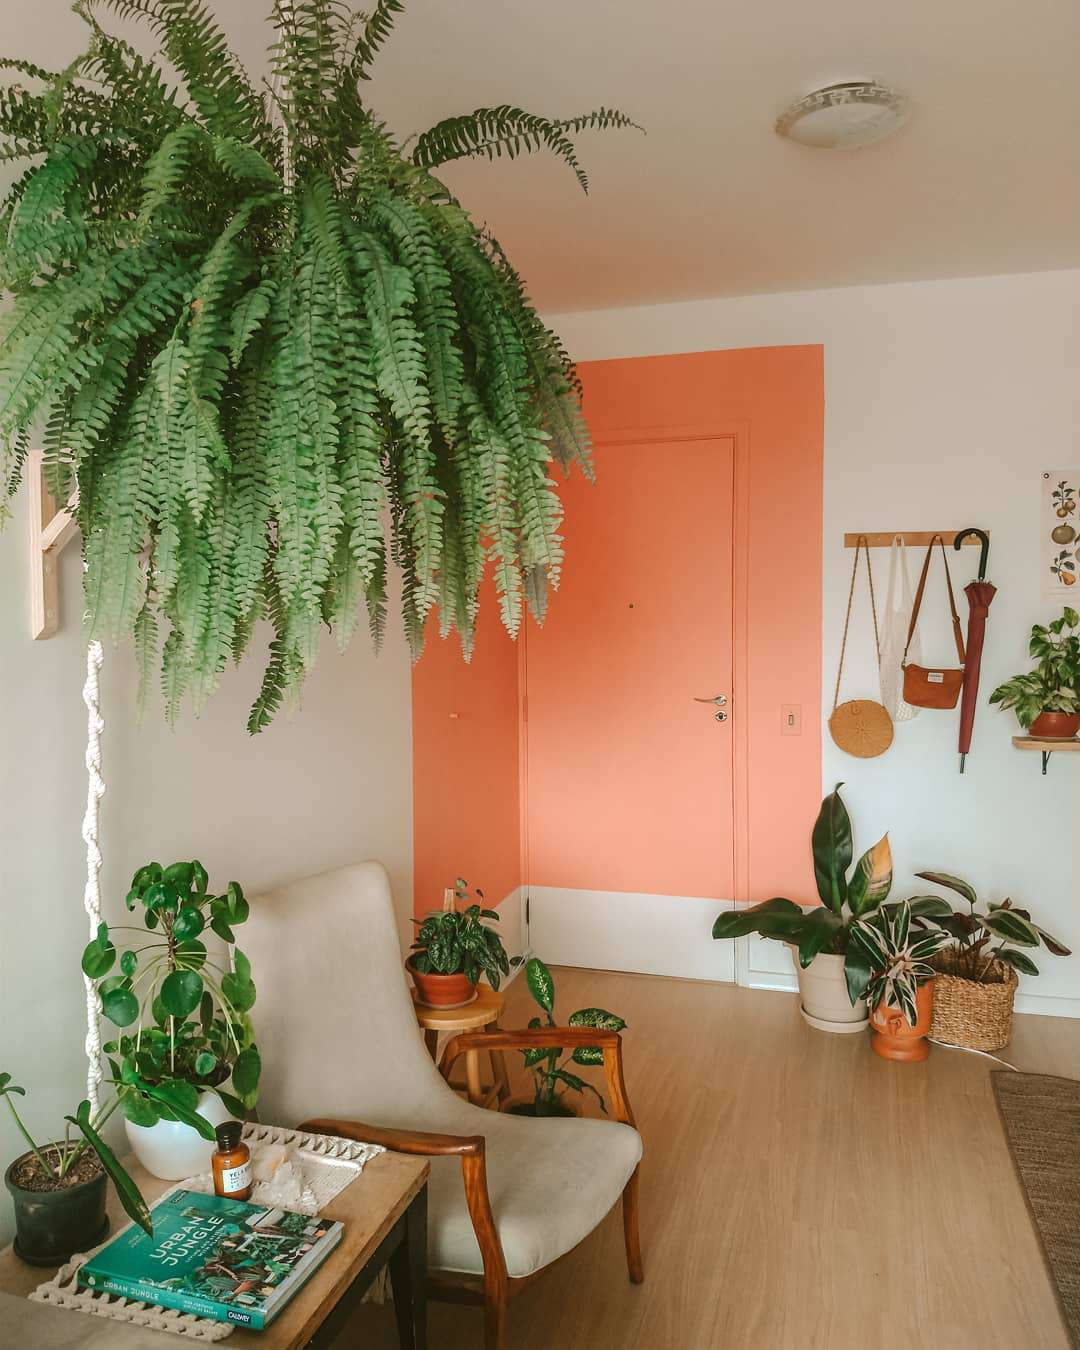 boston fern hanging in white and orange living room with other potted plants and chair